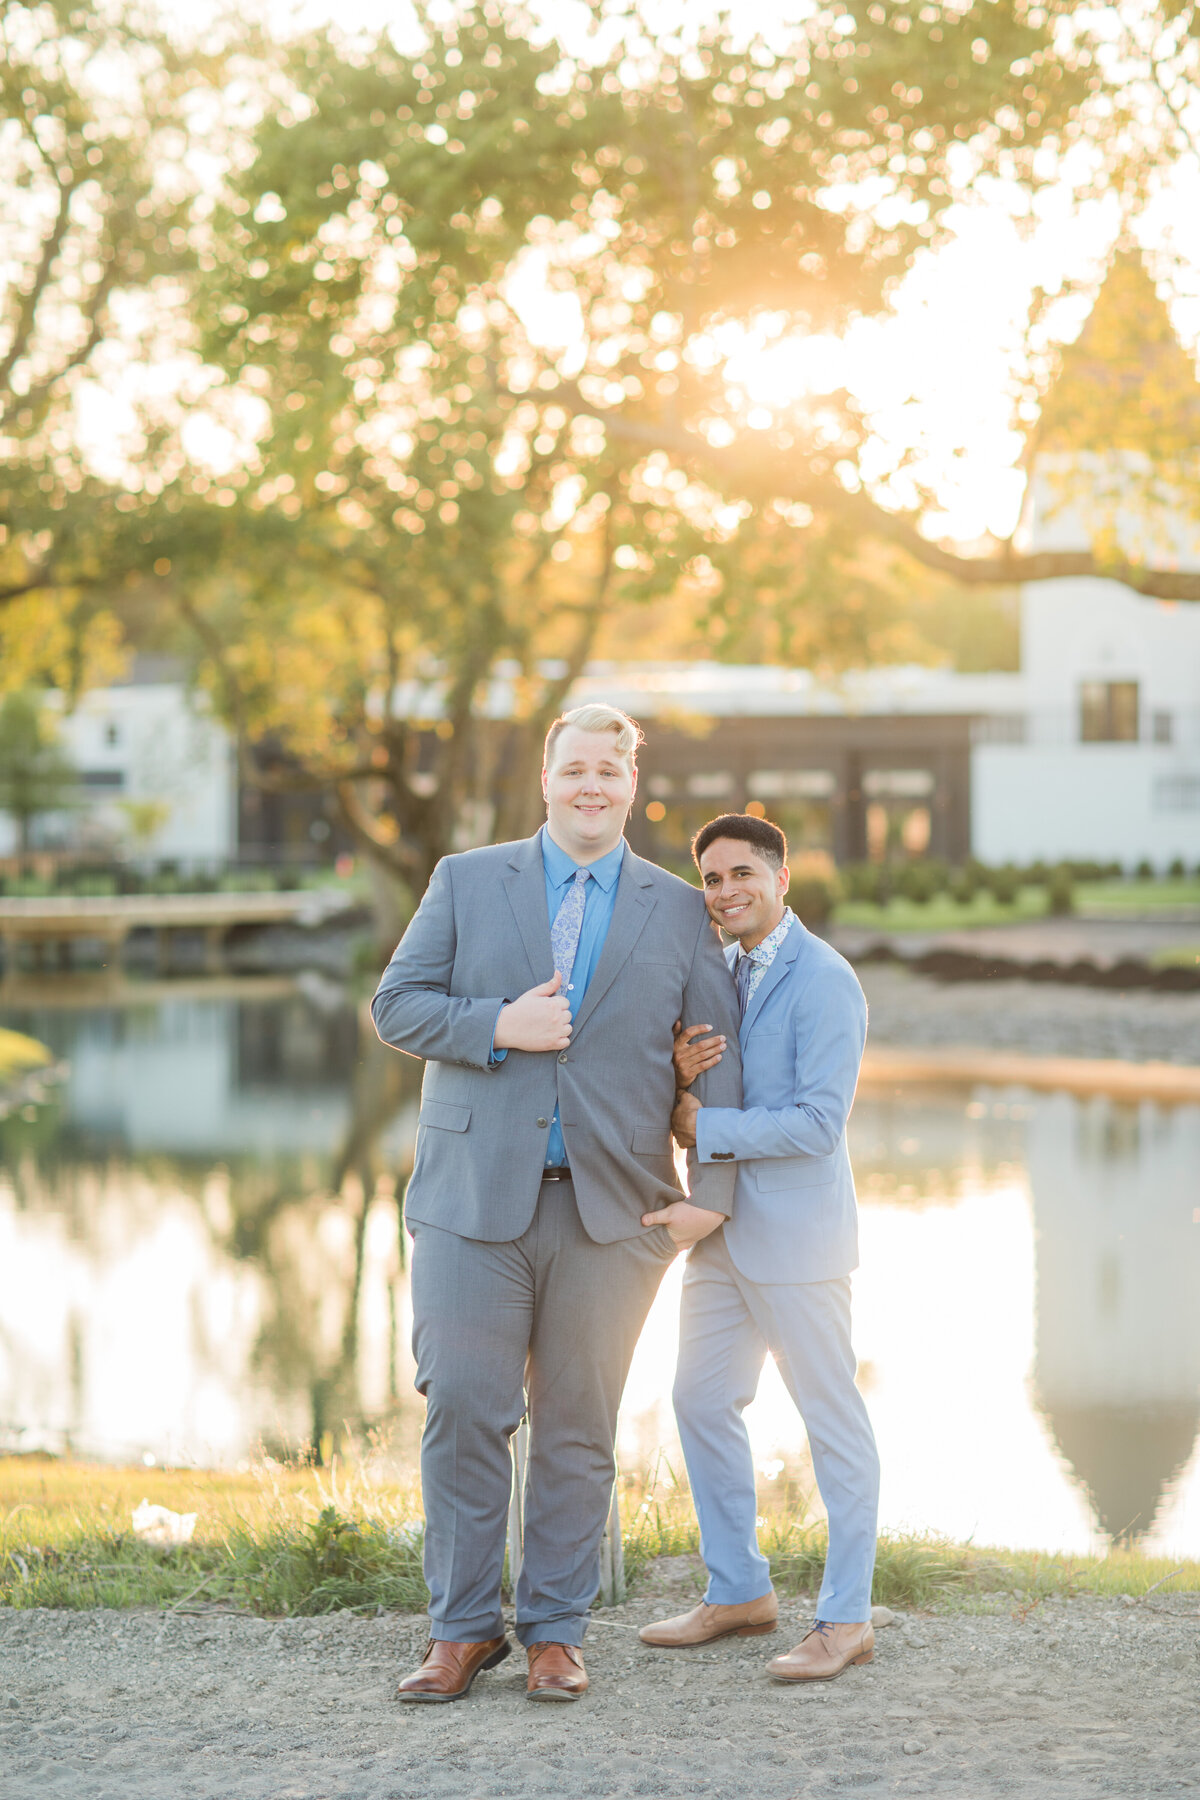 LGBTQ_Engagement_Session_Renault_Winery_Galloway_New_Jersey-75